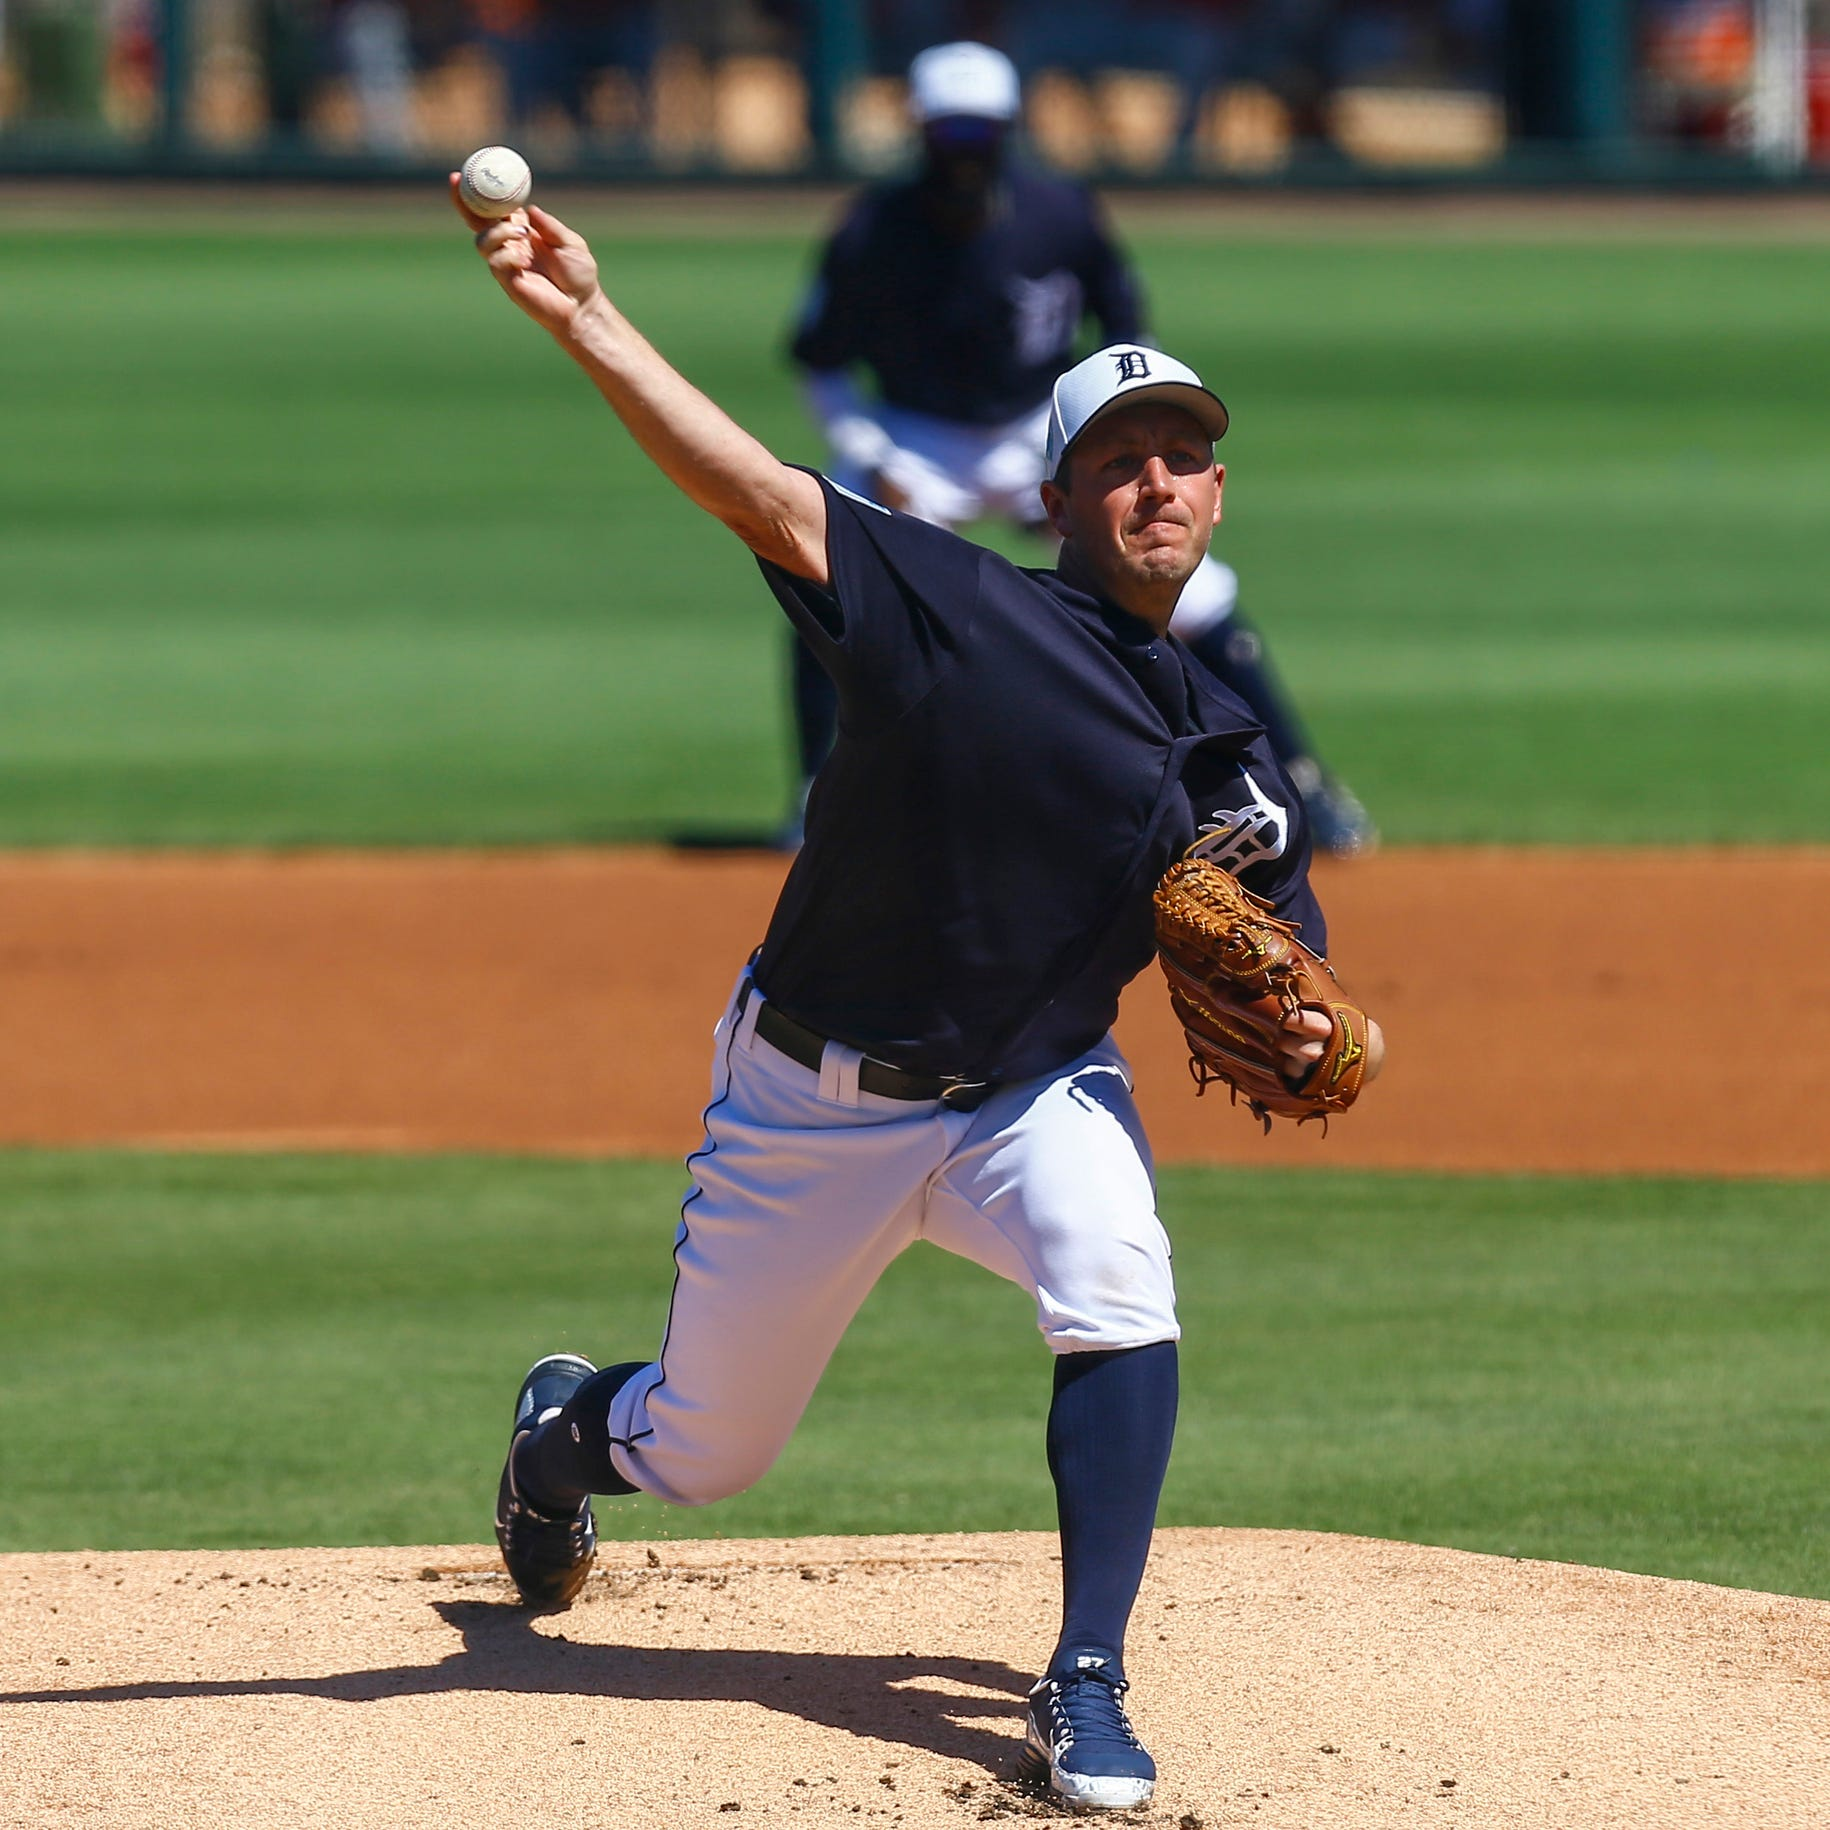 Detroit Tigers spring training observations: Jordan Zimmermann good again